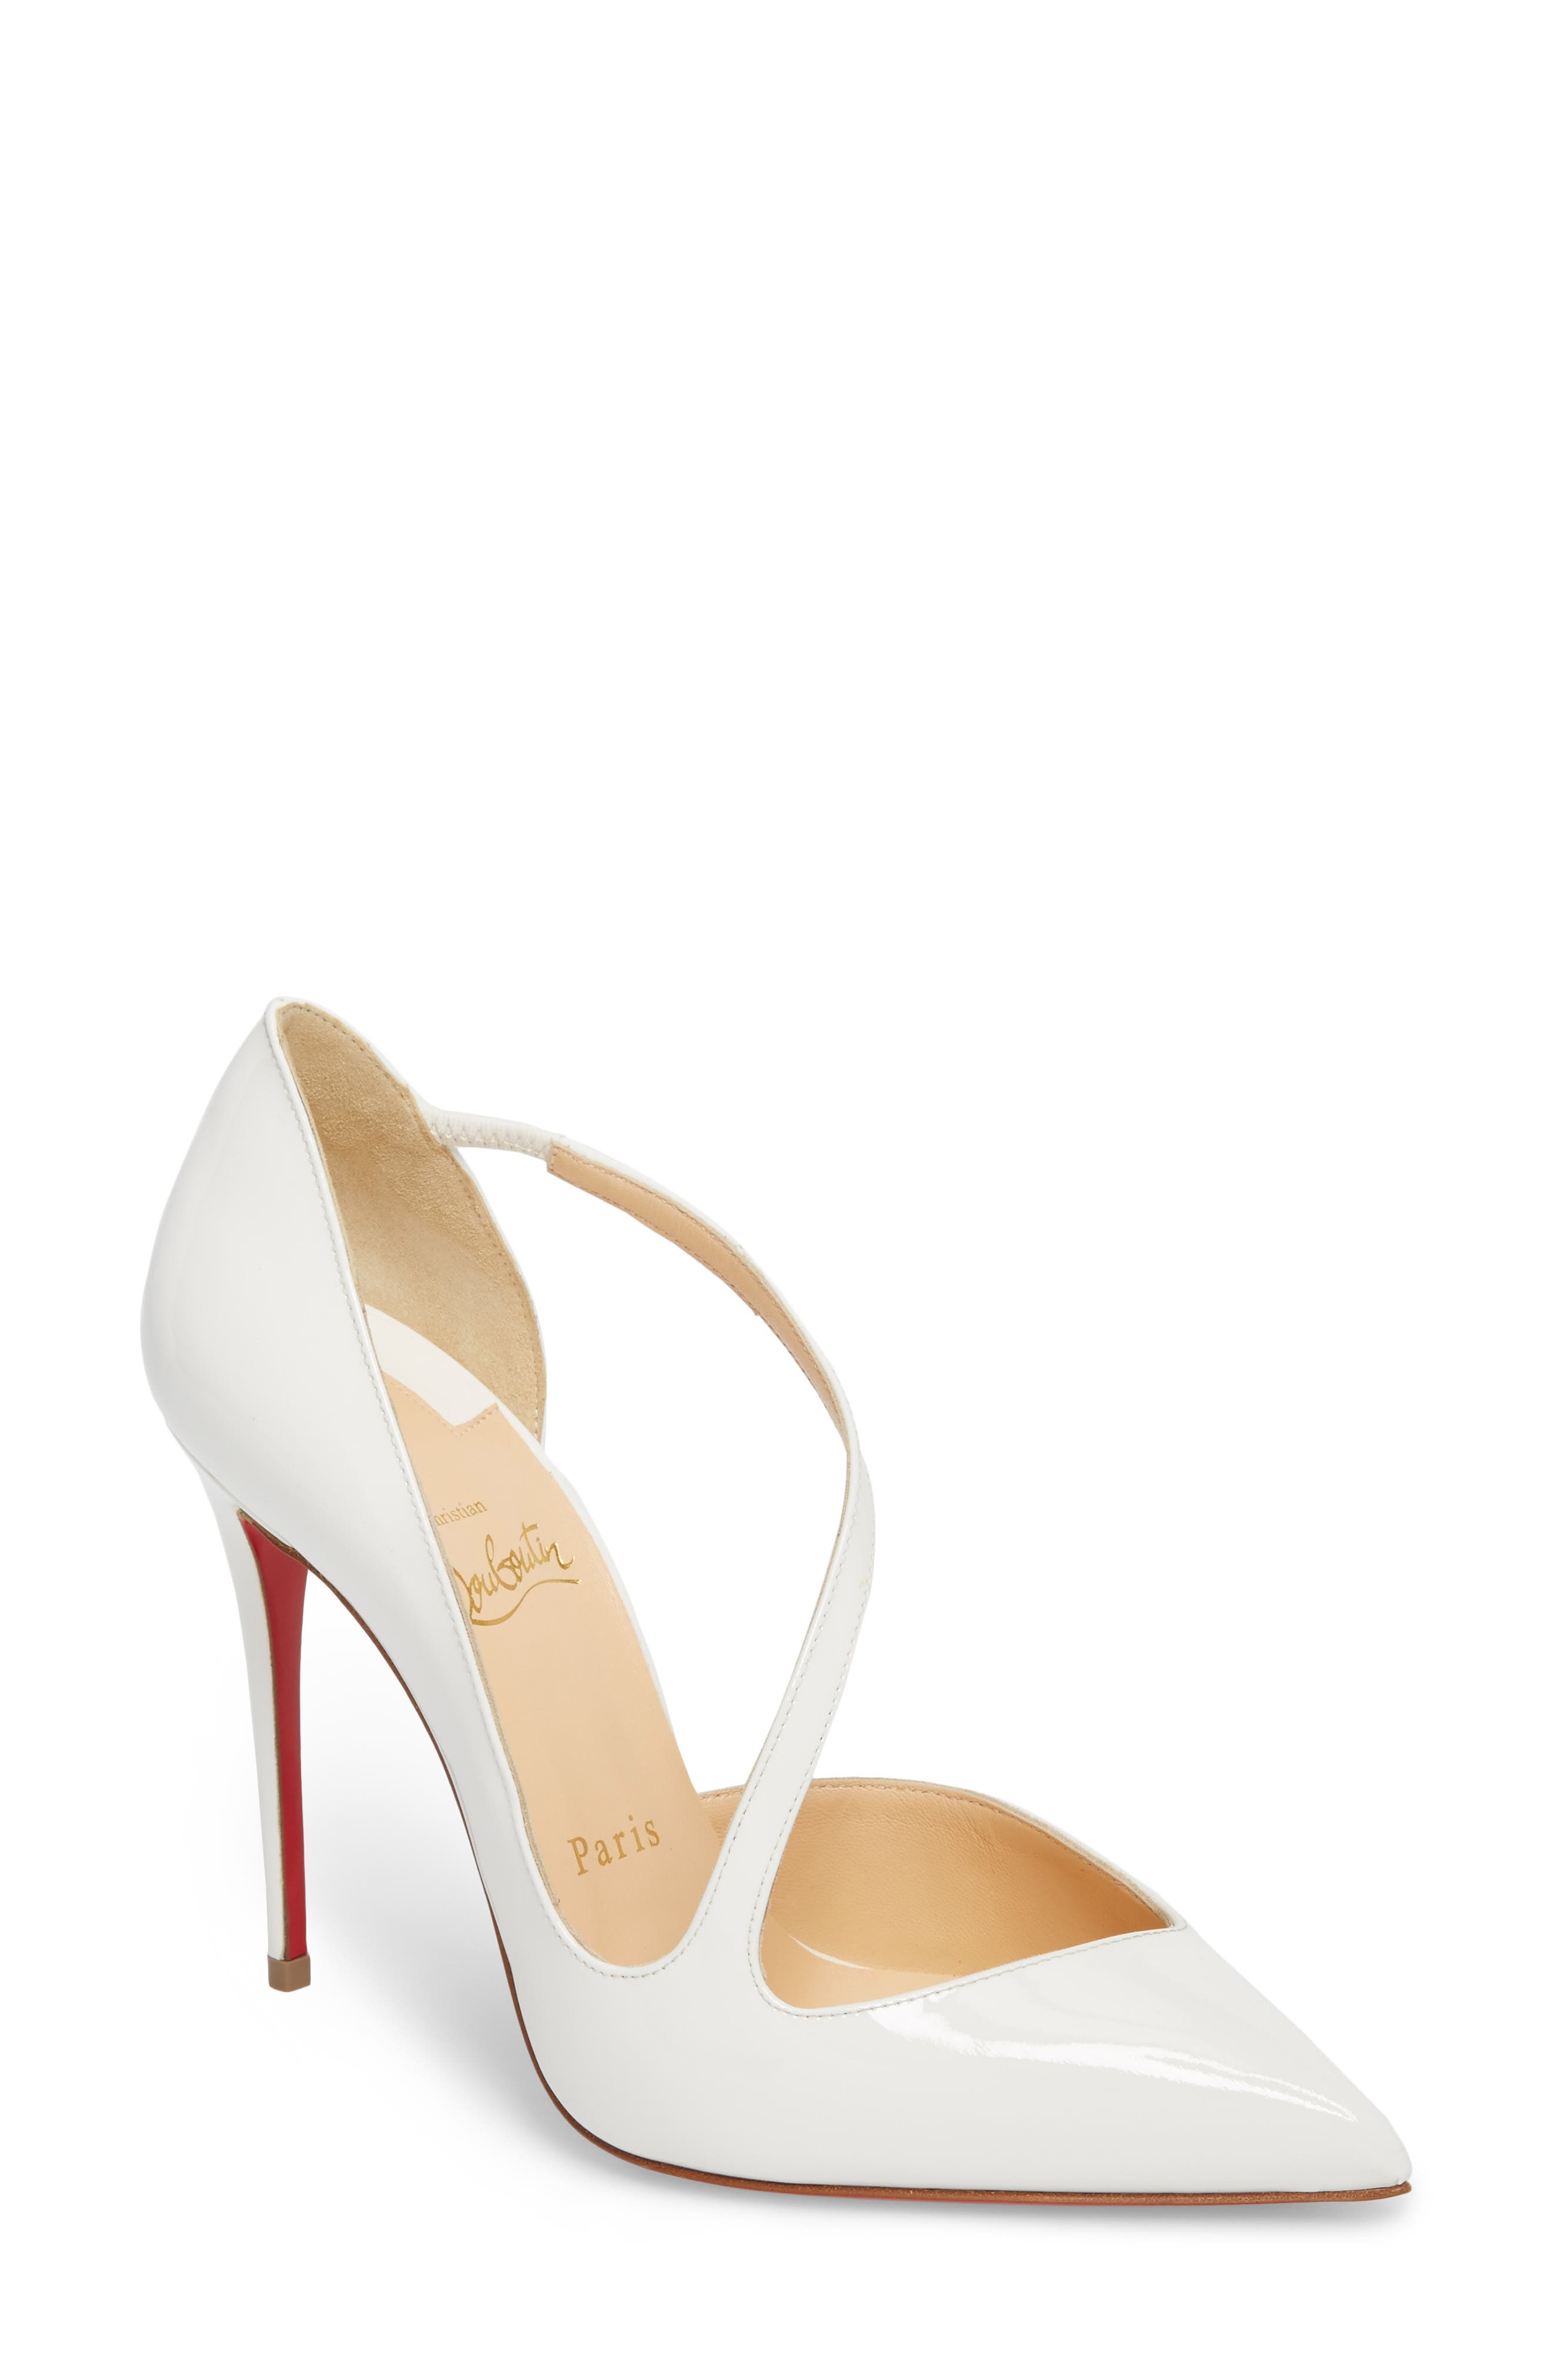 fa6d63b5822 black red bottom heels with spikes christian louboutin pigalle plato 100mm